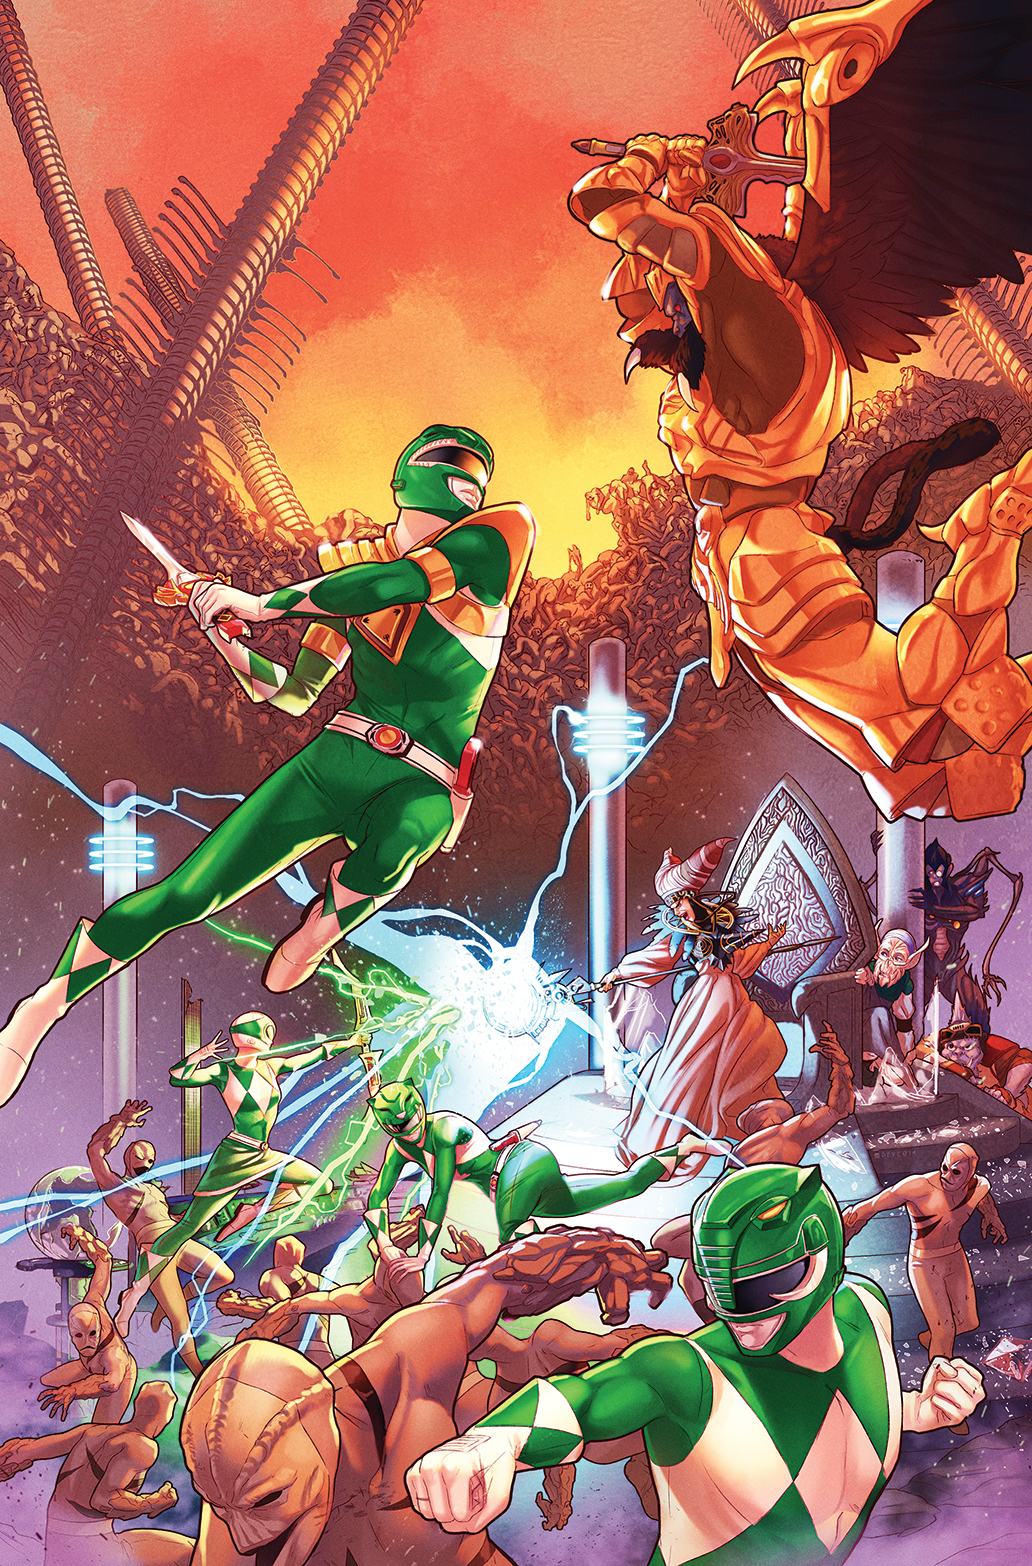 Mighty morphin power rangers issue 13 covers and synopsis for Powers bureau issue 13